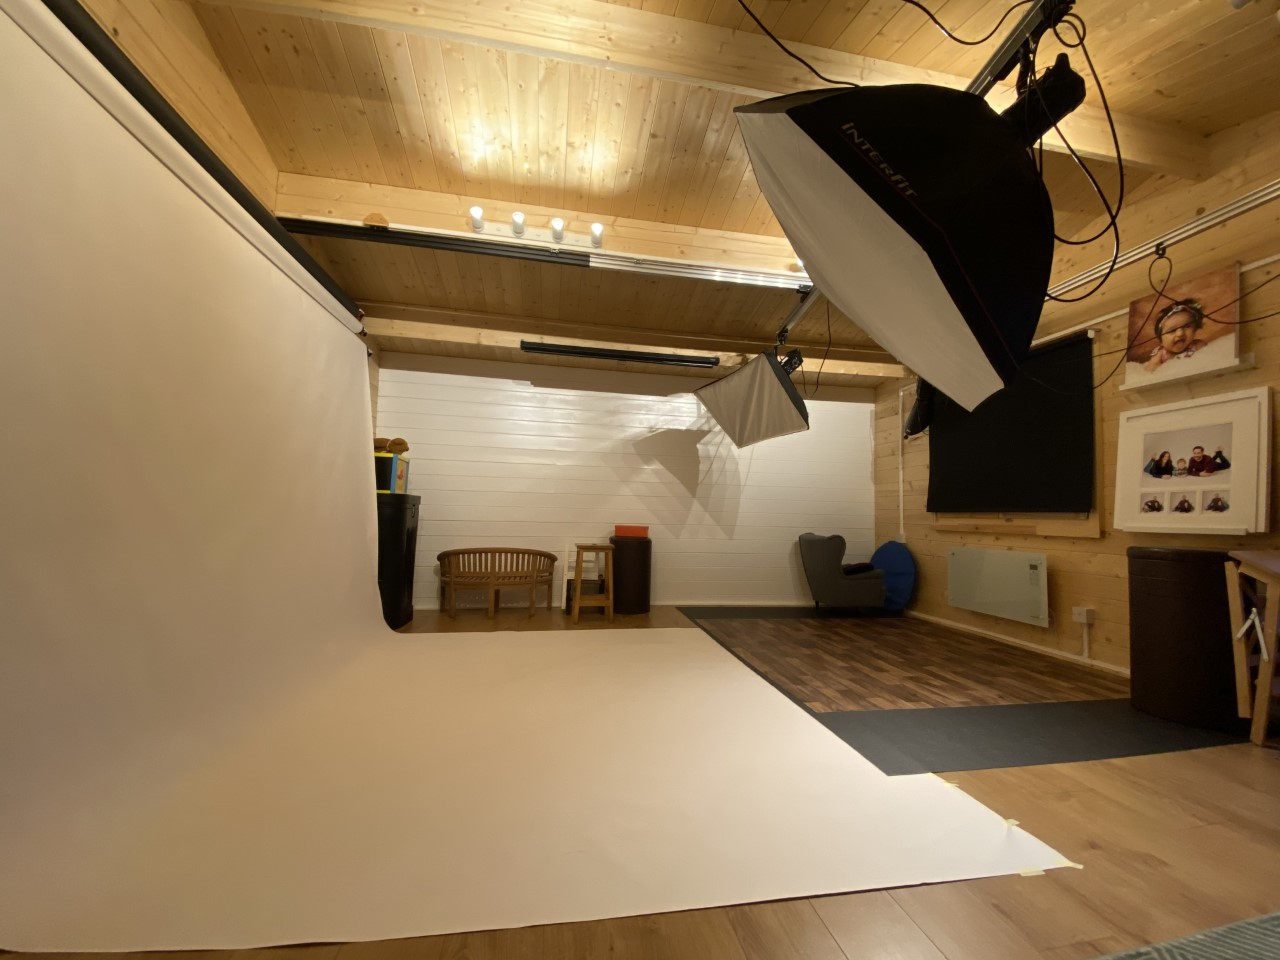 inside trebor photography studio showing large working studio area